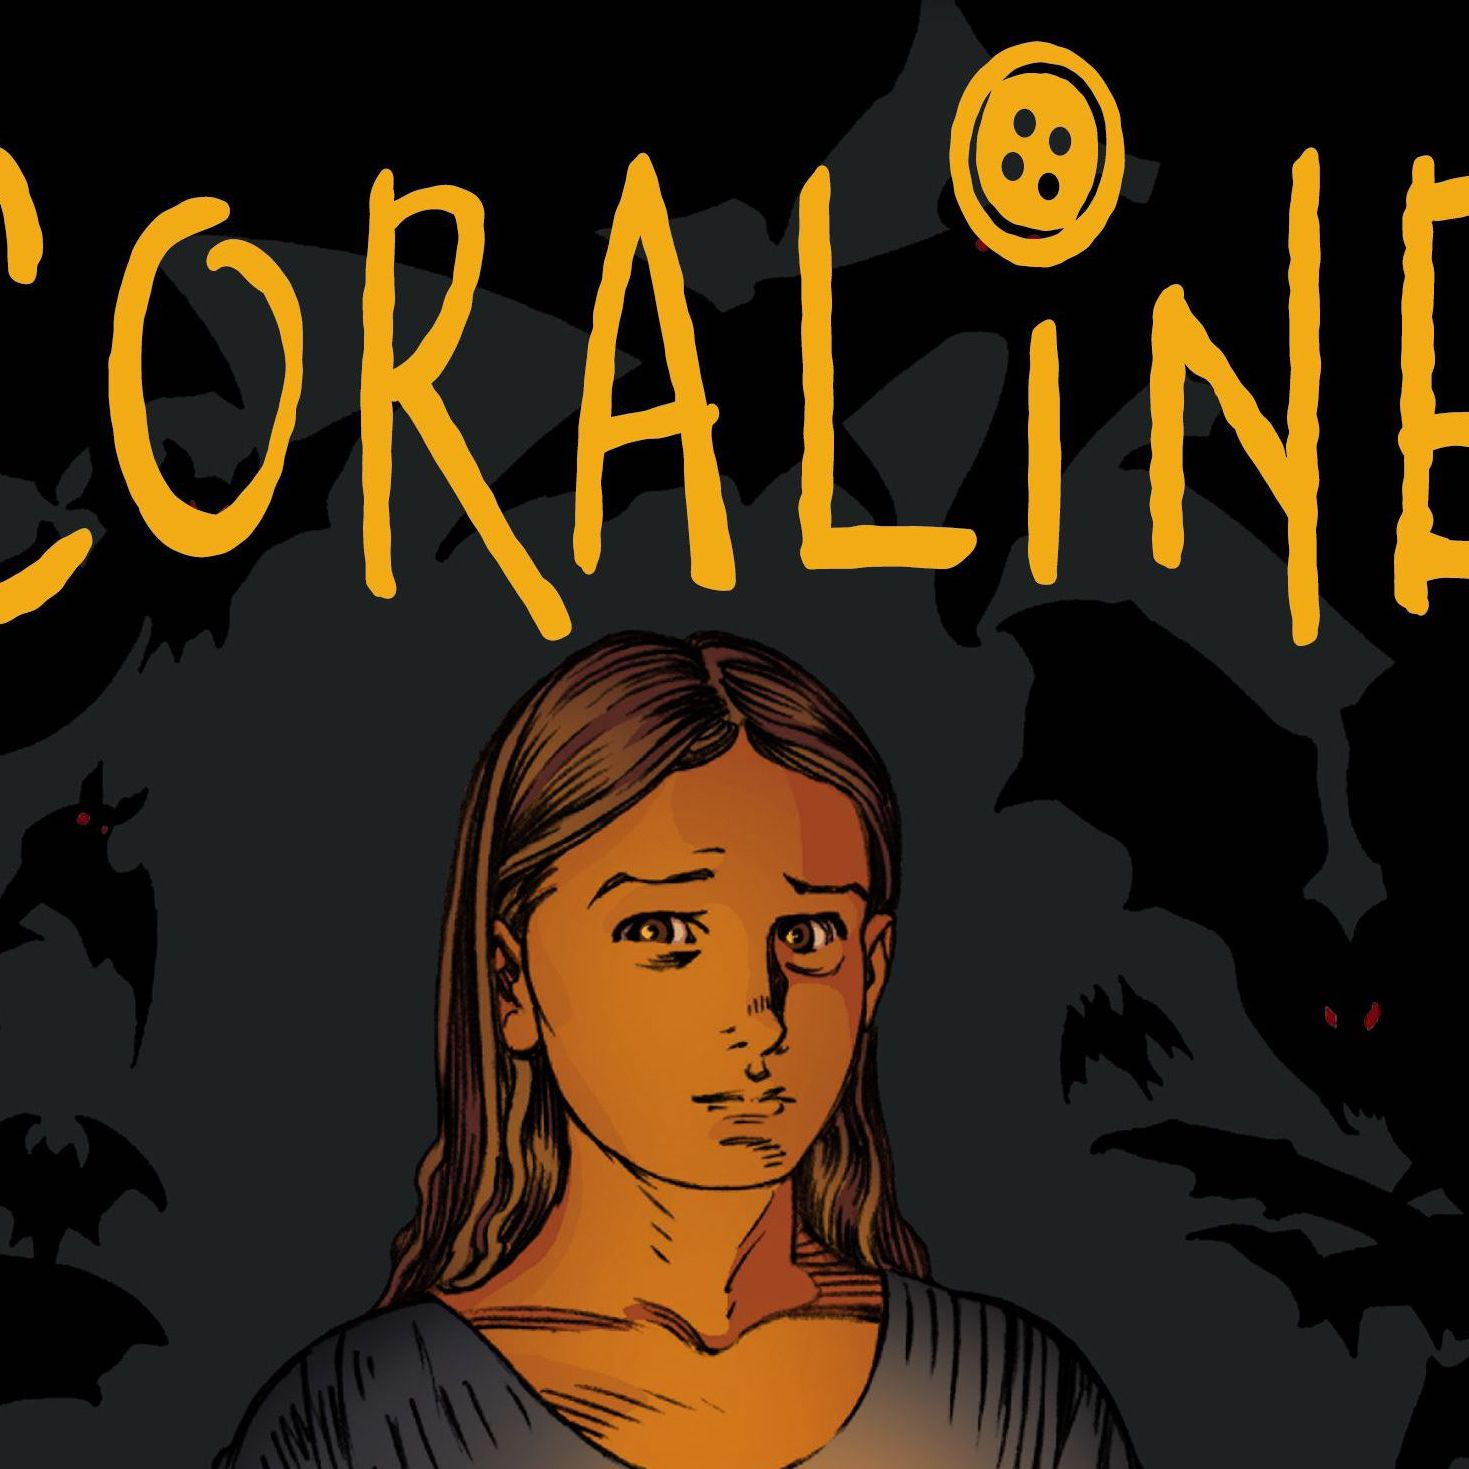 Coraline By Neil Gaiman Summary And Review